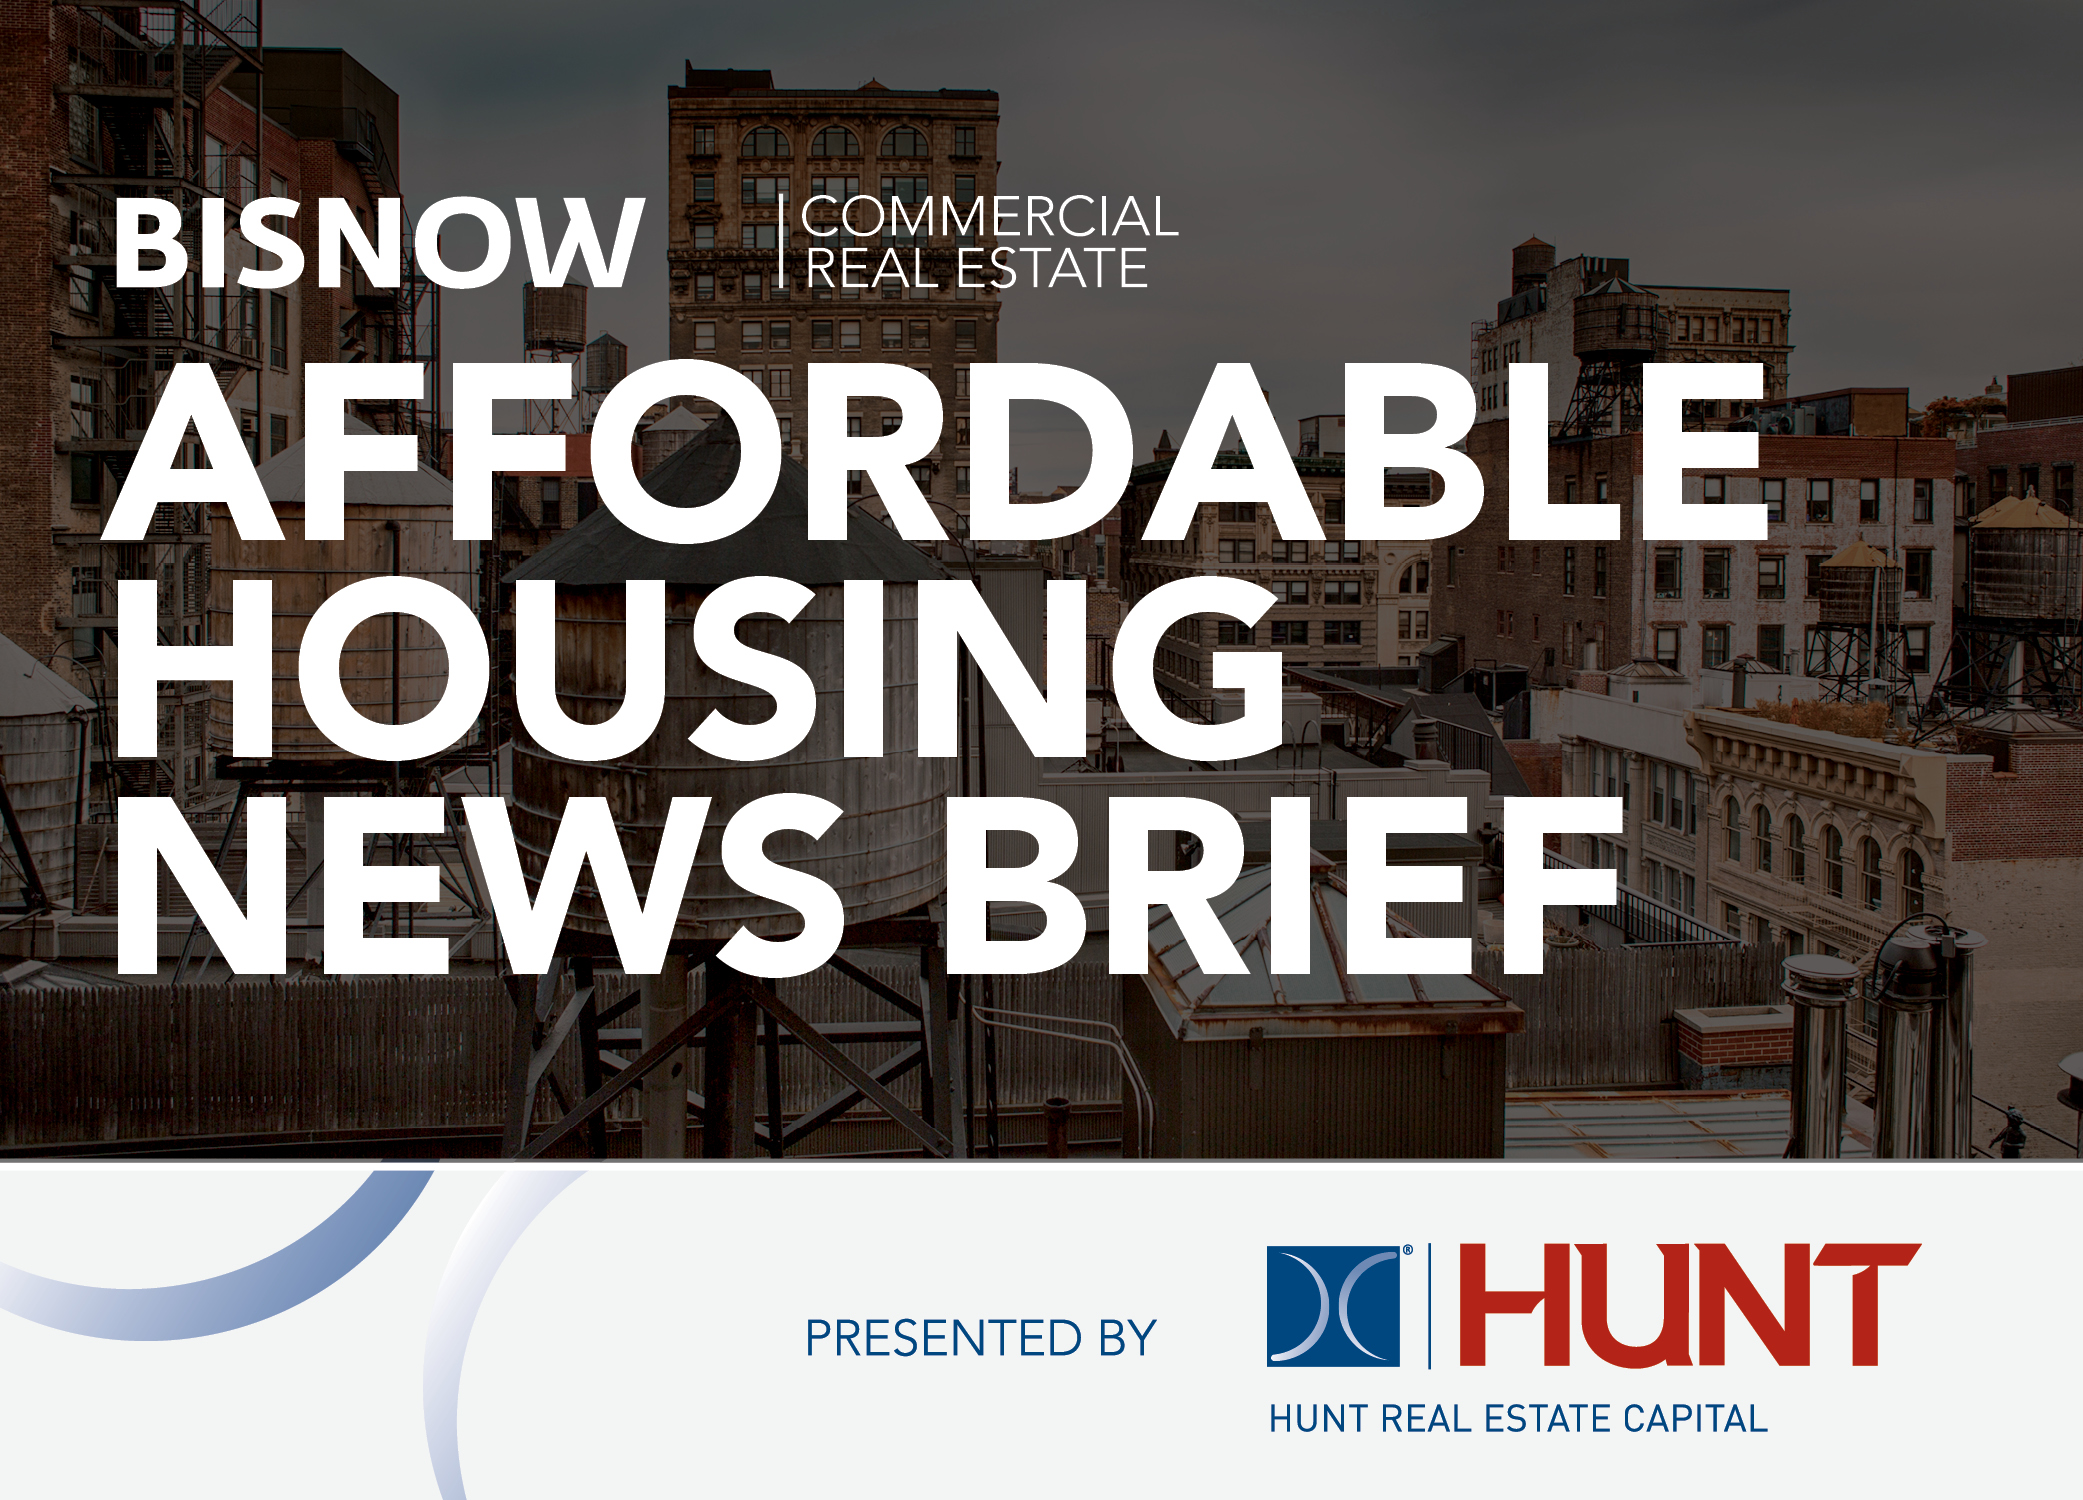 Bisnow Morning Brief Affordable Housing Weekly Brief [national]